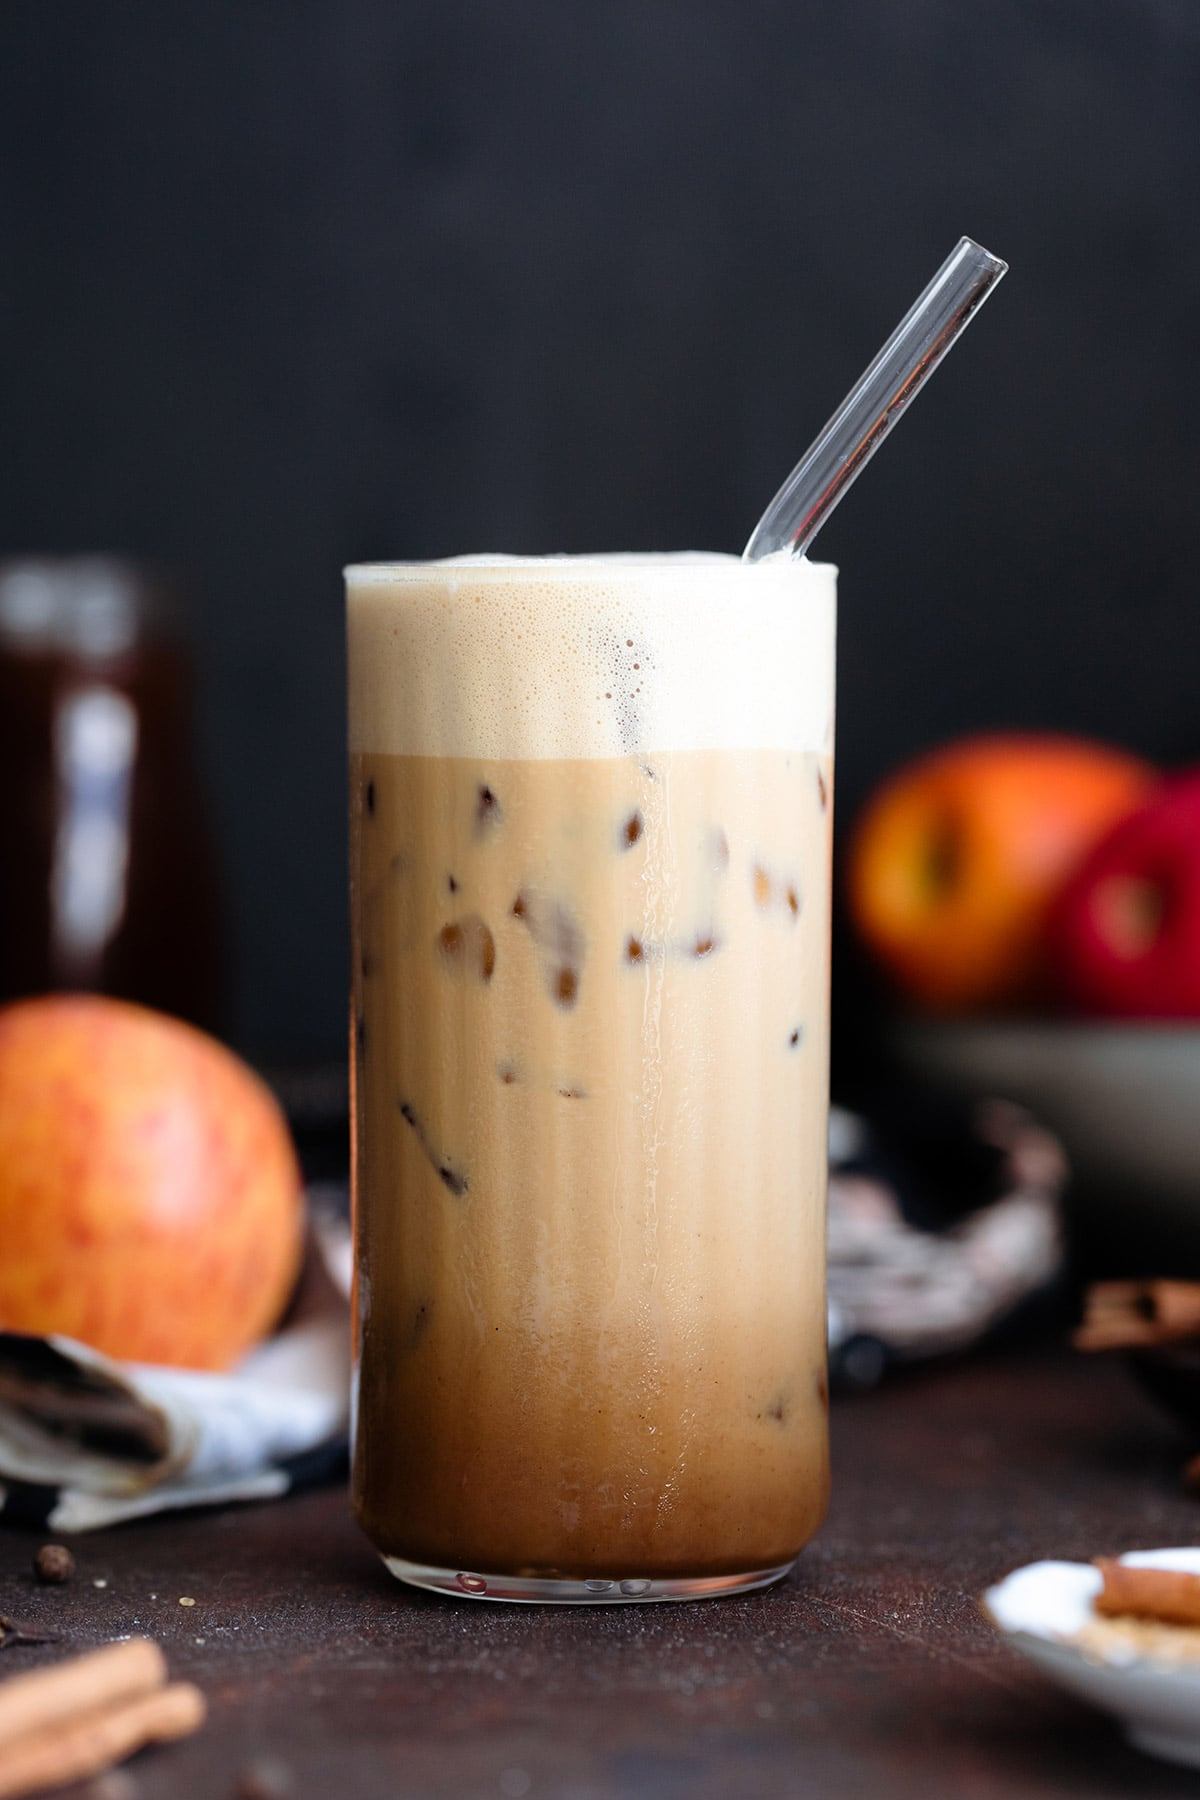 A tall glass with an iced macchiato on a dark background.